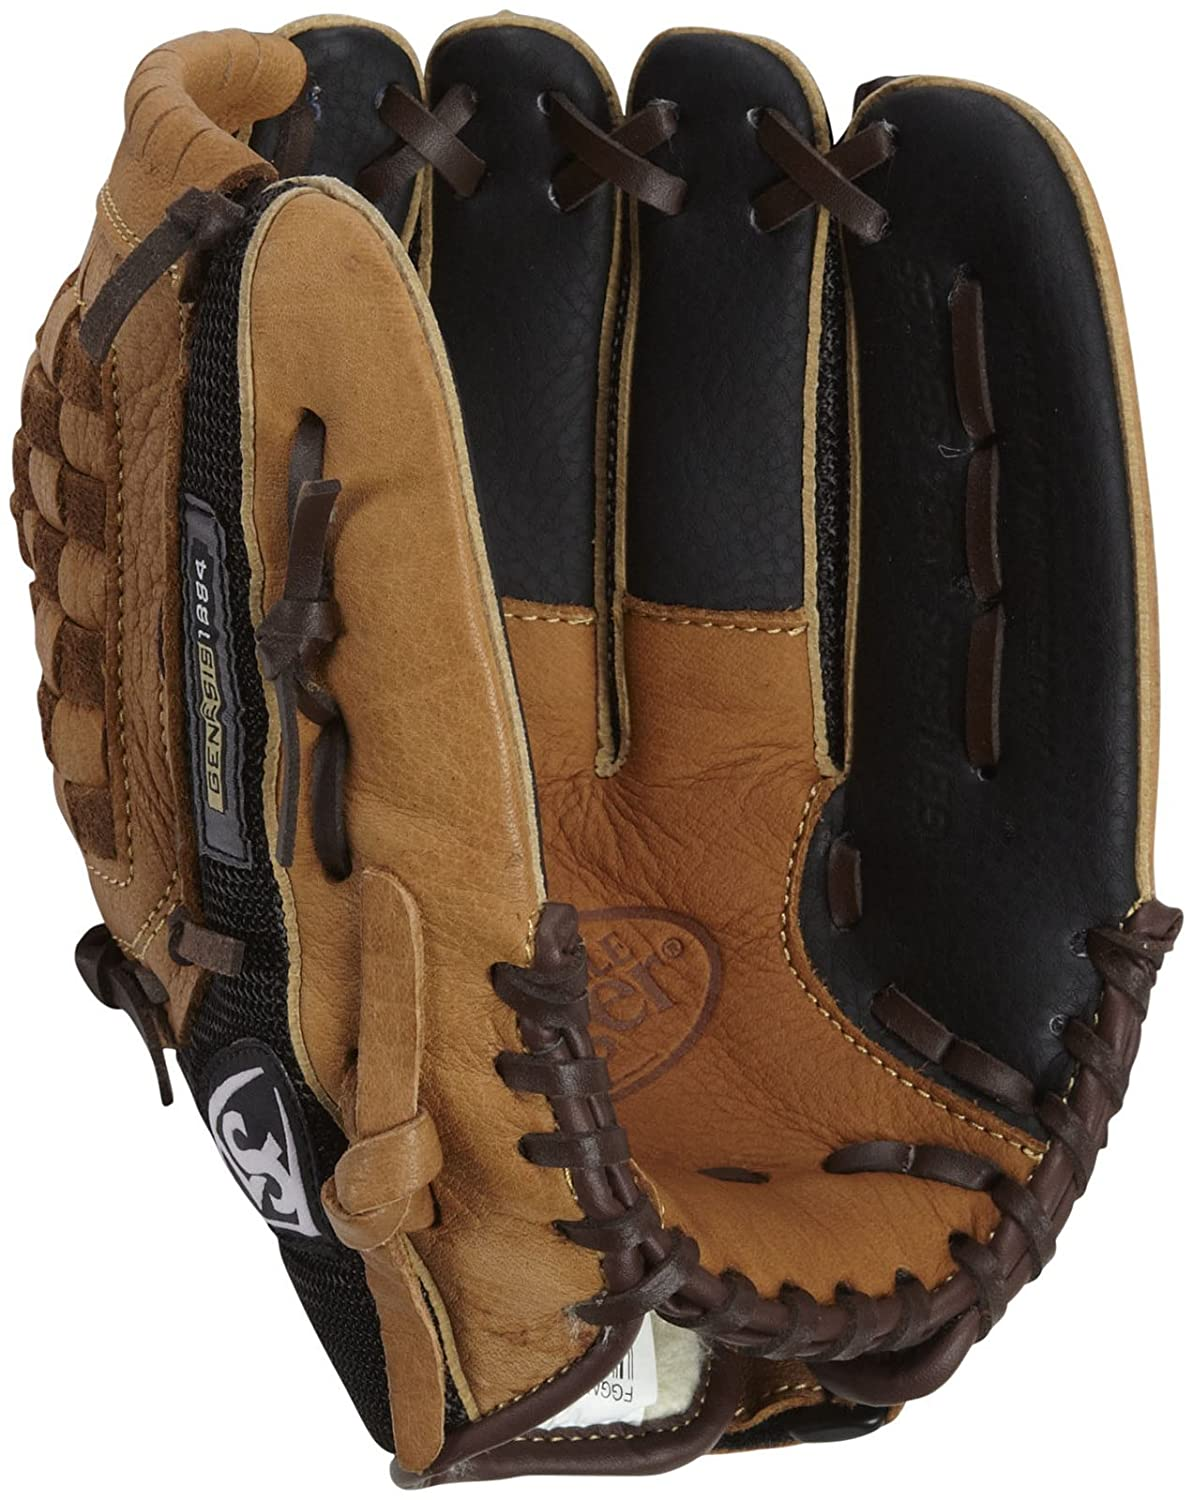 Youth Baseball Gloves